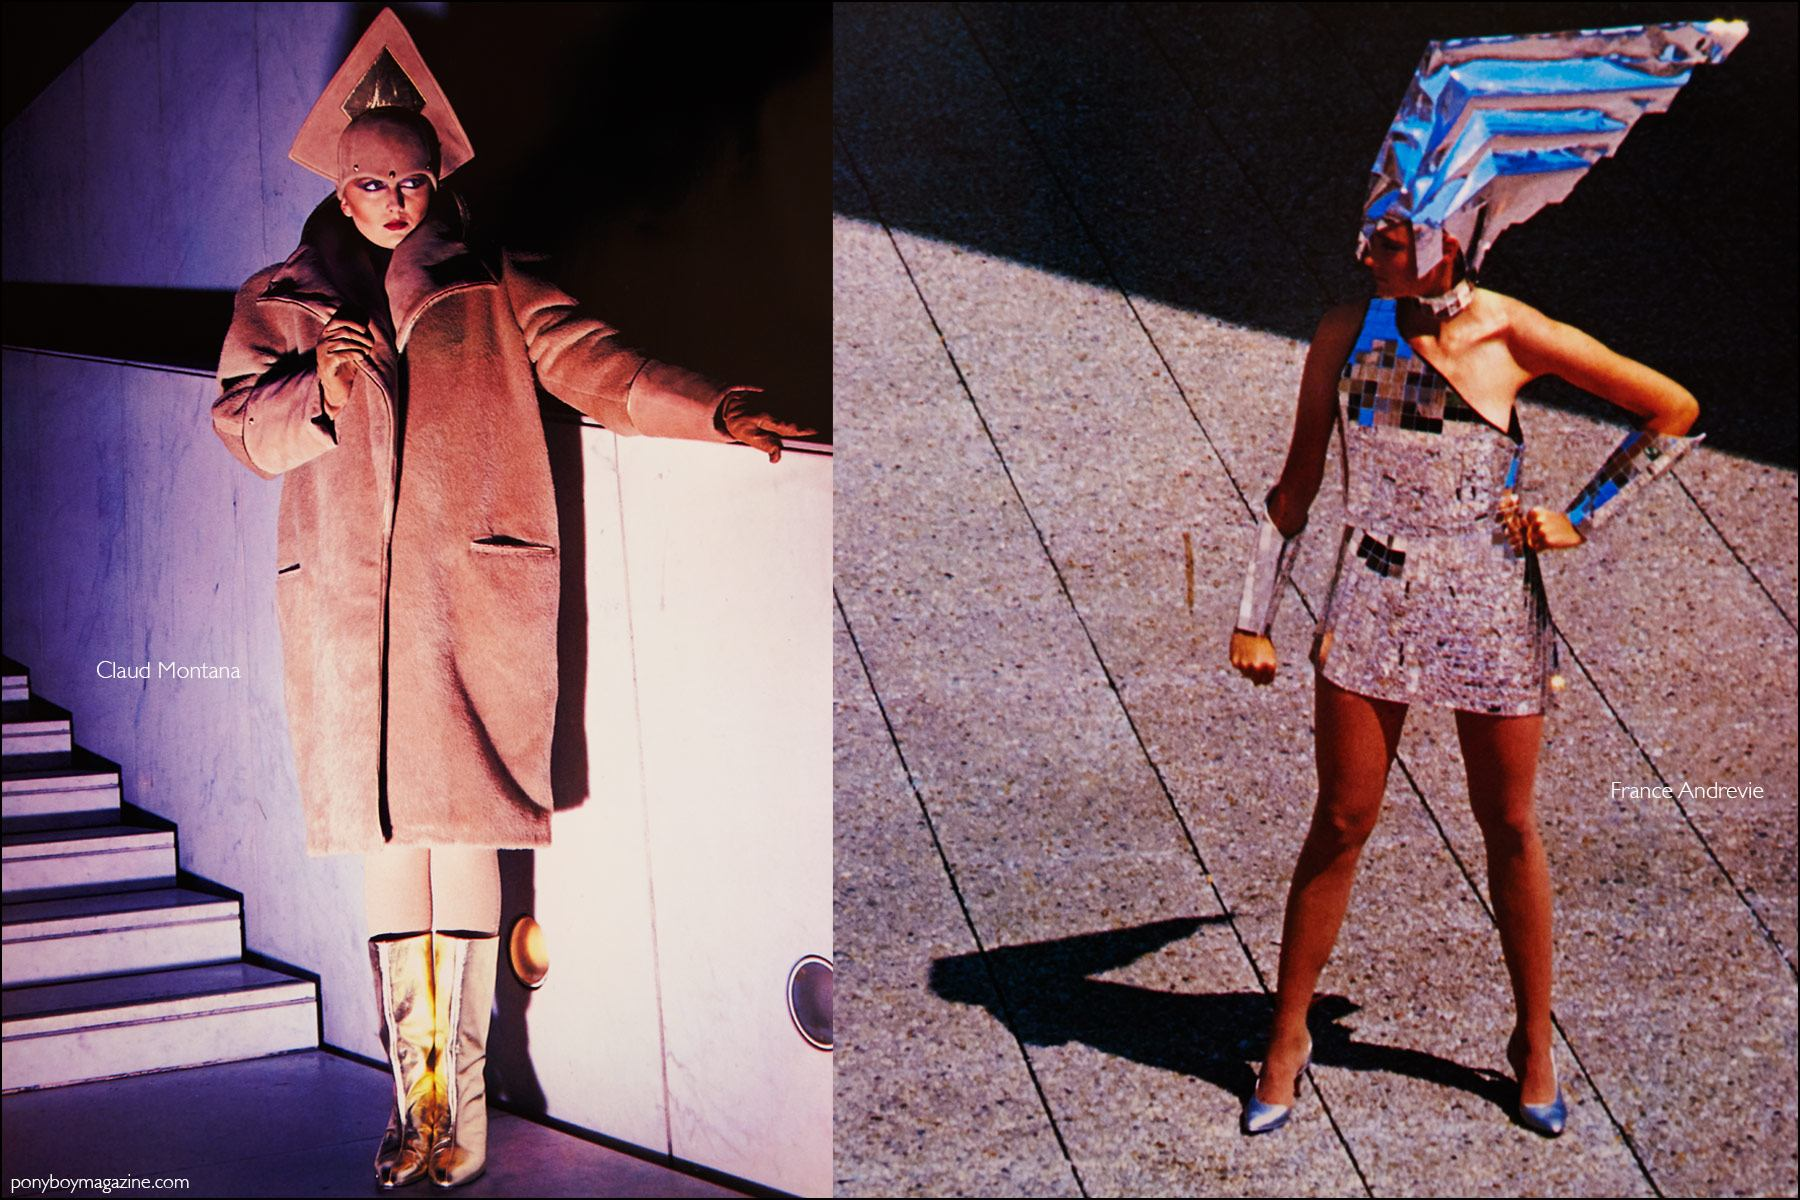 Futuristic fashions by Claud Montana and France Andrevie featured in the book Fashion: 2001 by Lucille Khornak. Ponyboy magazine NY.